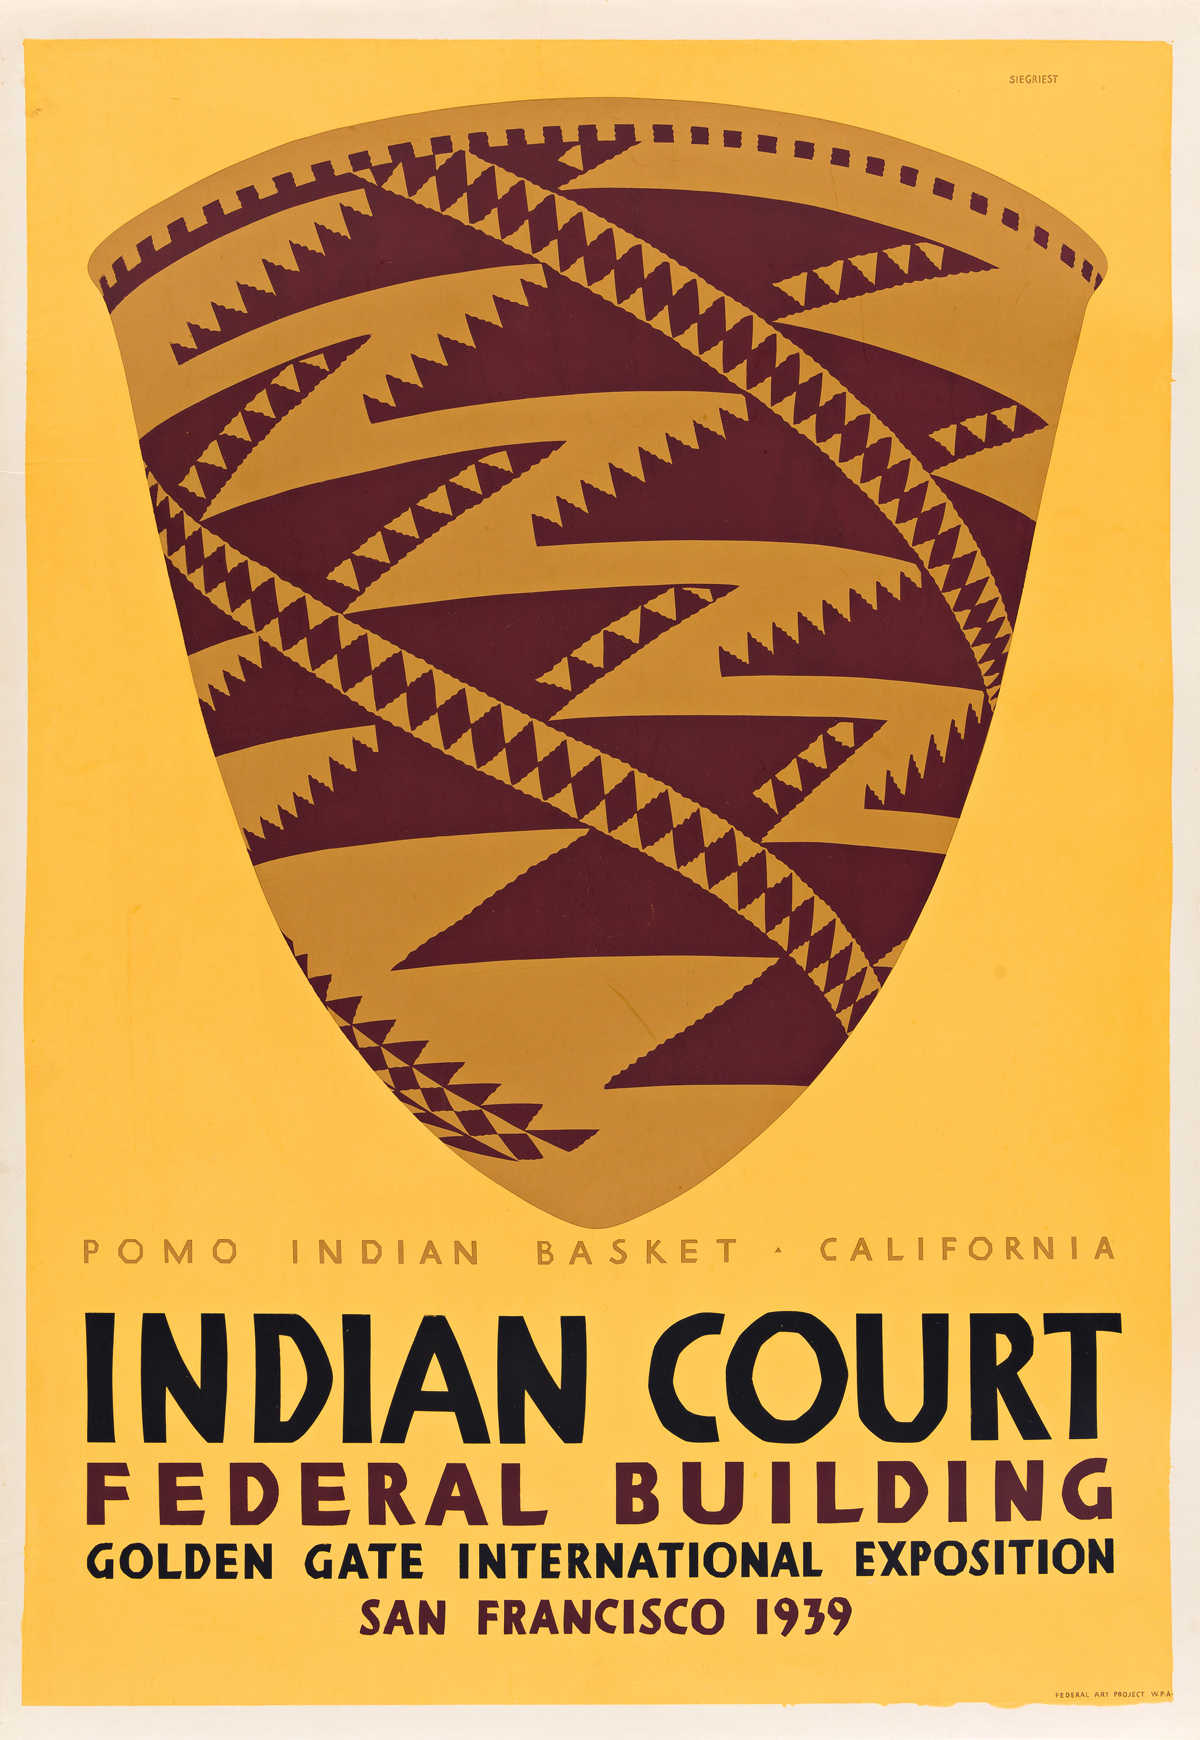 LOUIS B. SIEGRIEST (1899-1989) Indian Court Federal Building / Pomo Indian Basket - California.